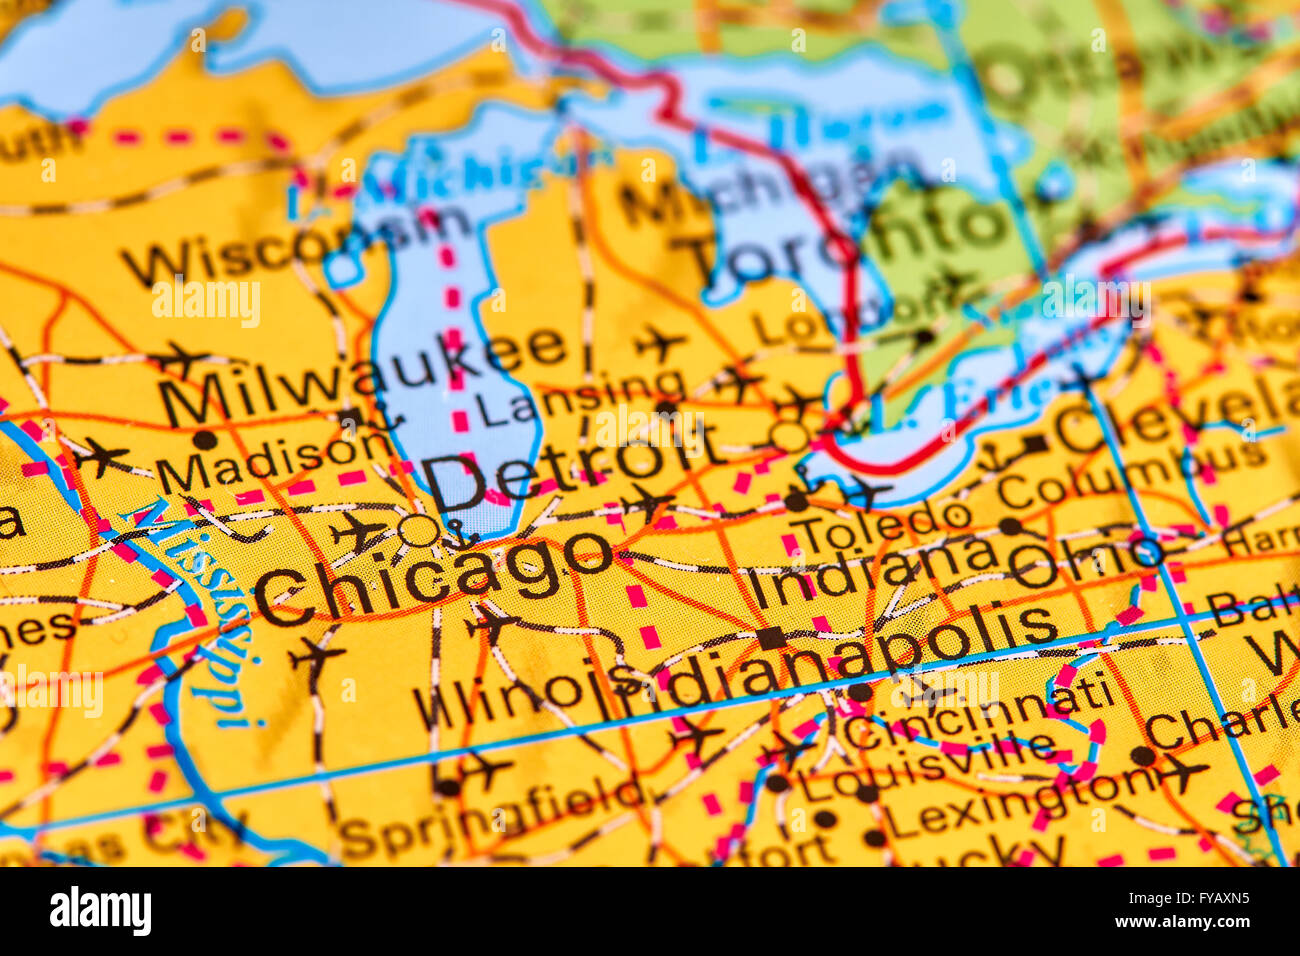 Chicago City In Usa On The World Map Stock Photo Alamy